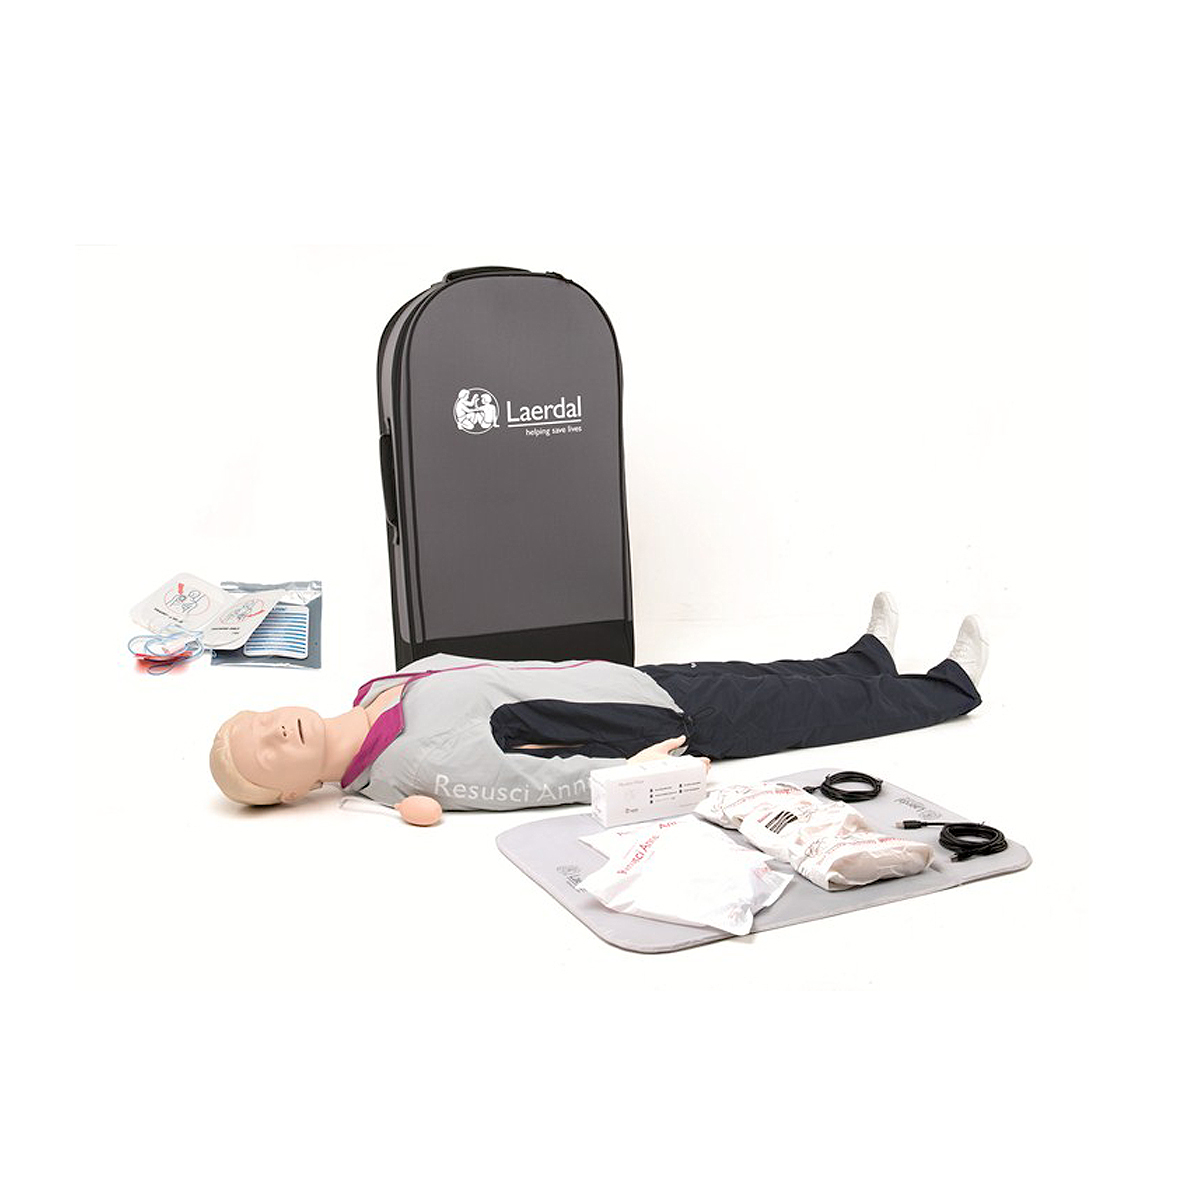 Laerdal Resusci® Anne QCPR AED Full Body with Trolley Case